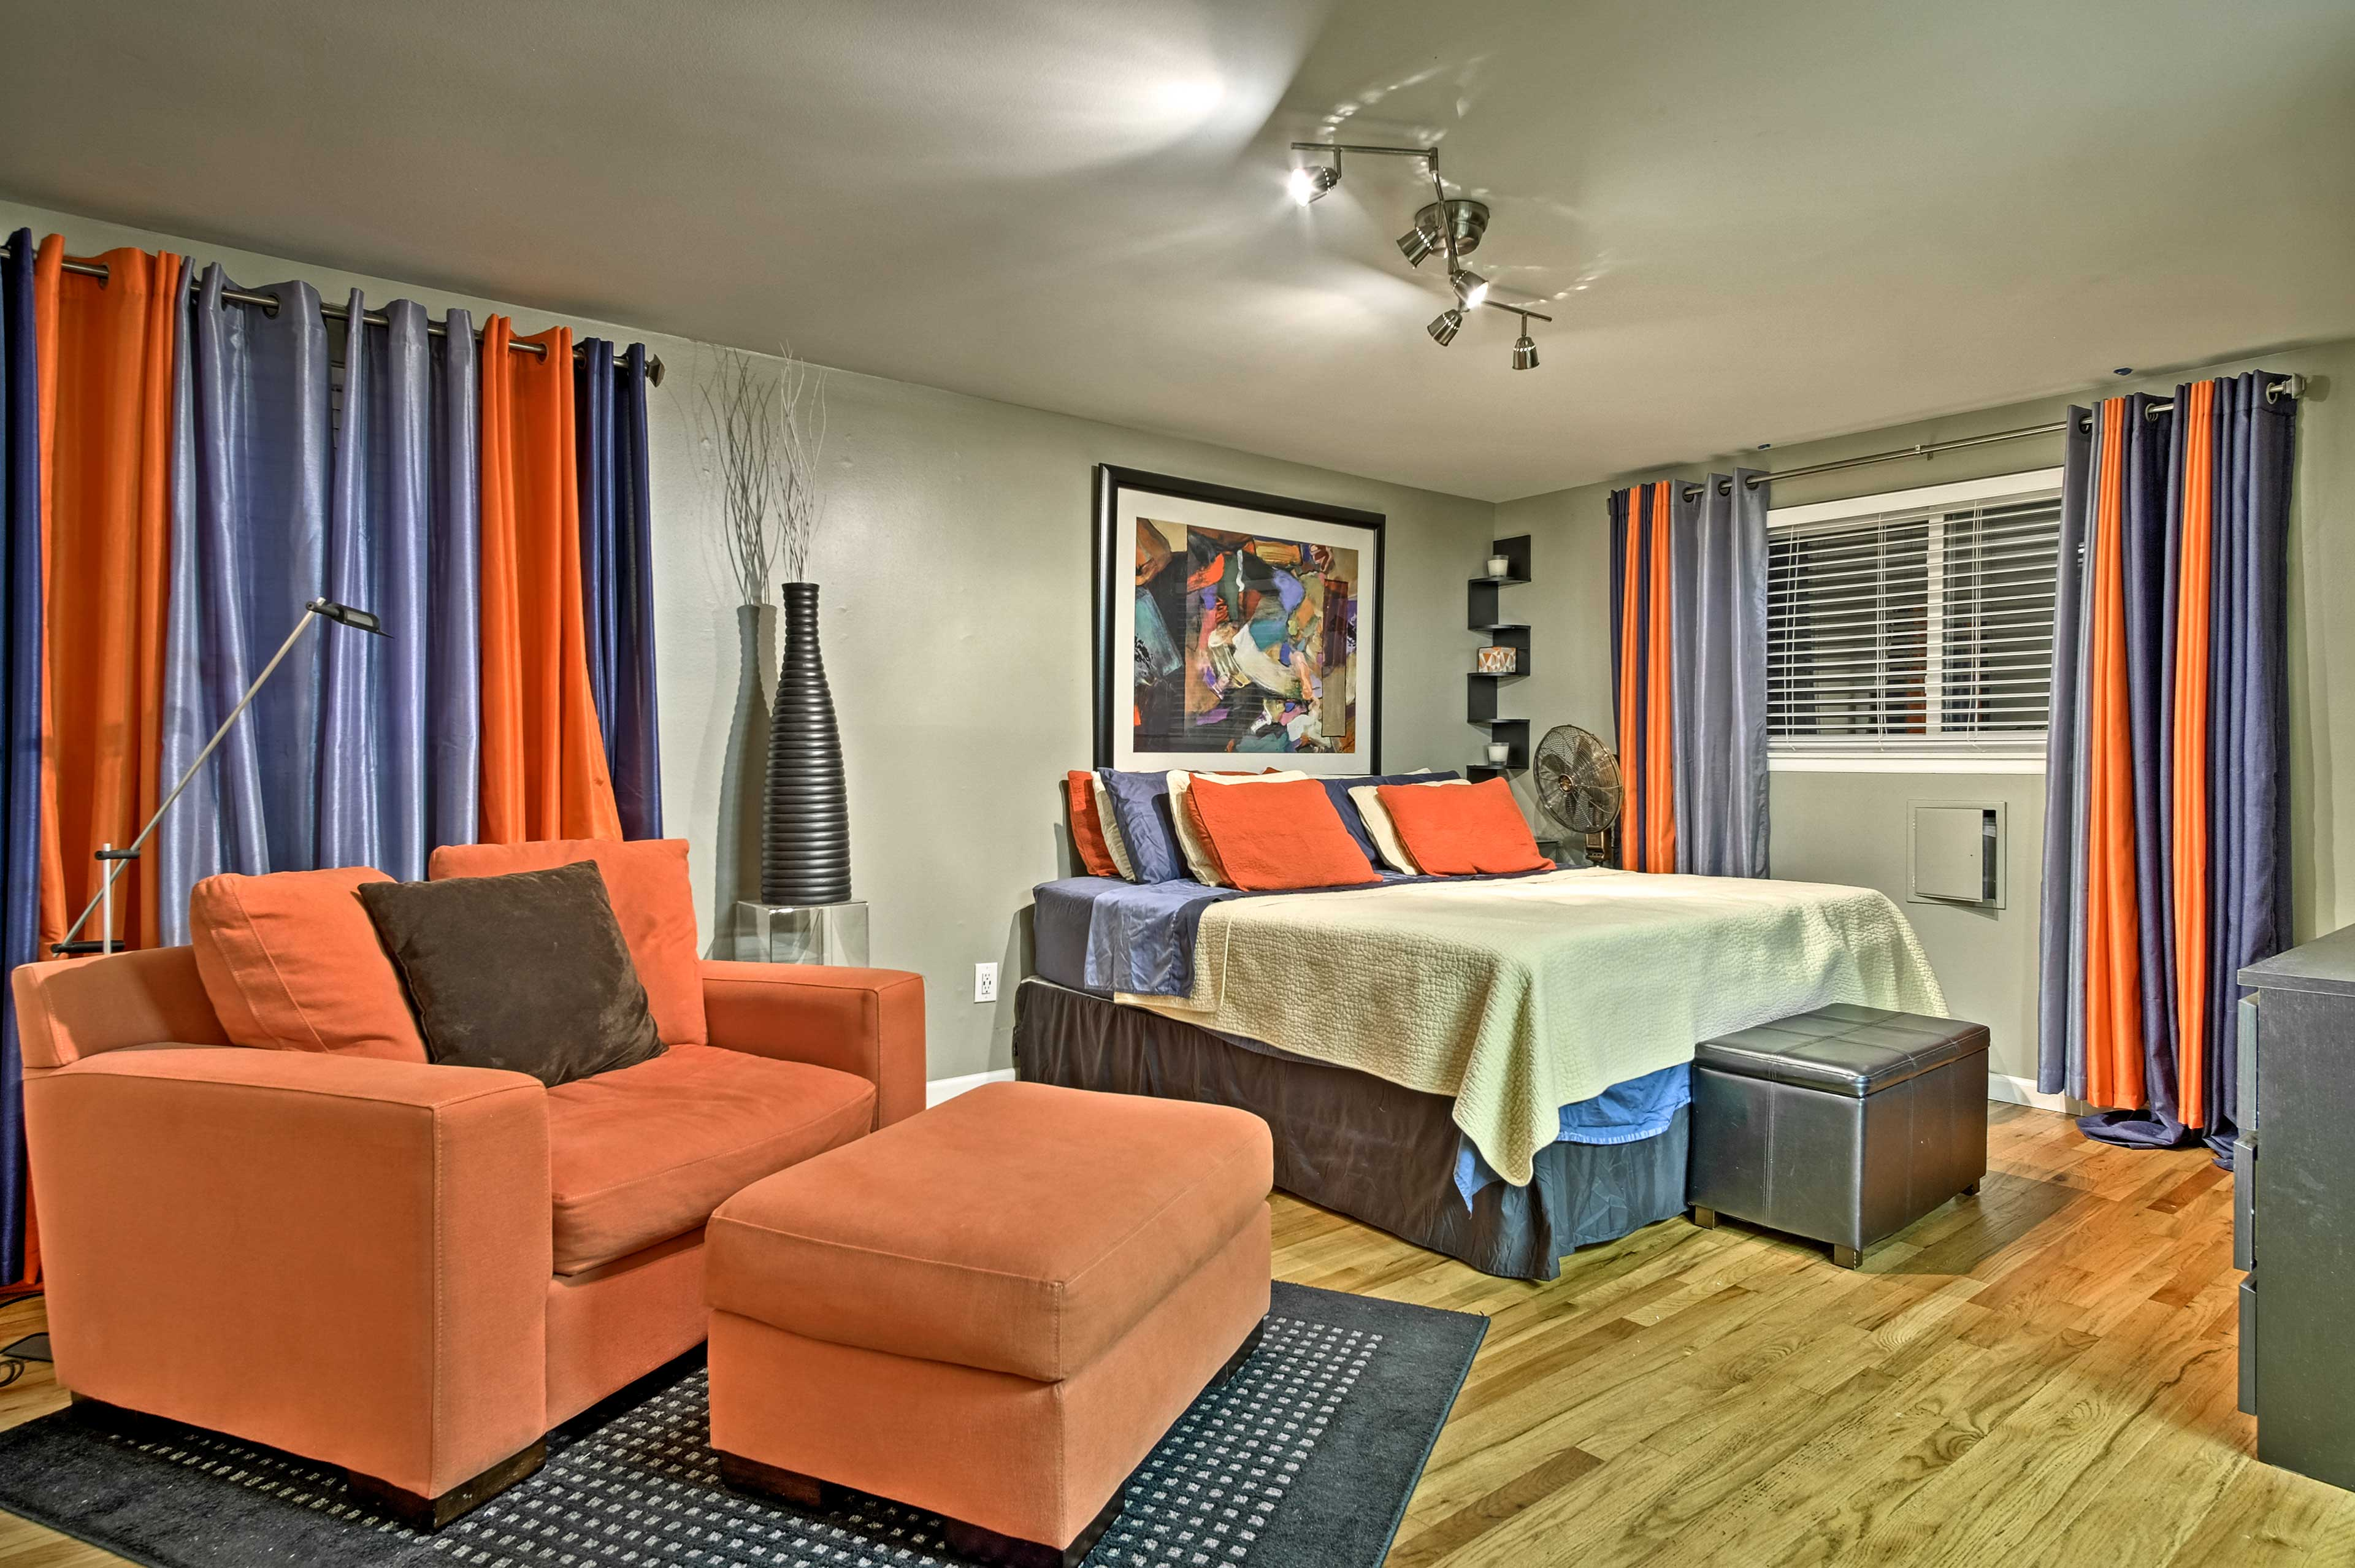 The master bedroom comes complete with a king bed and cozy sitting area.